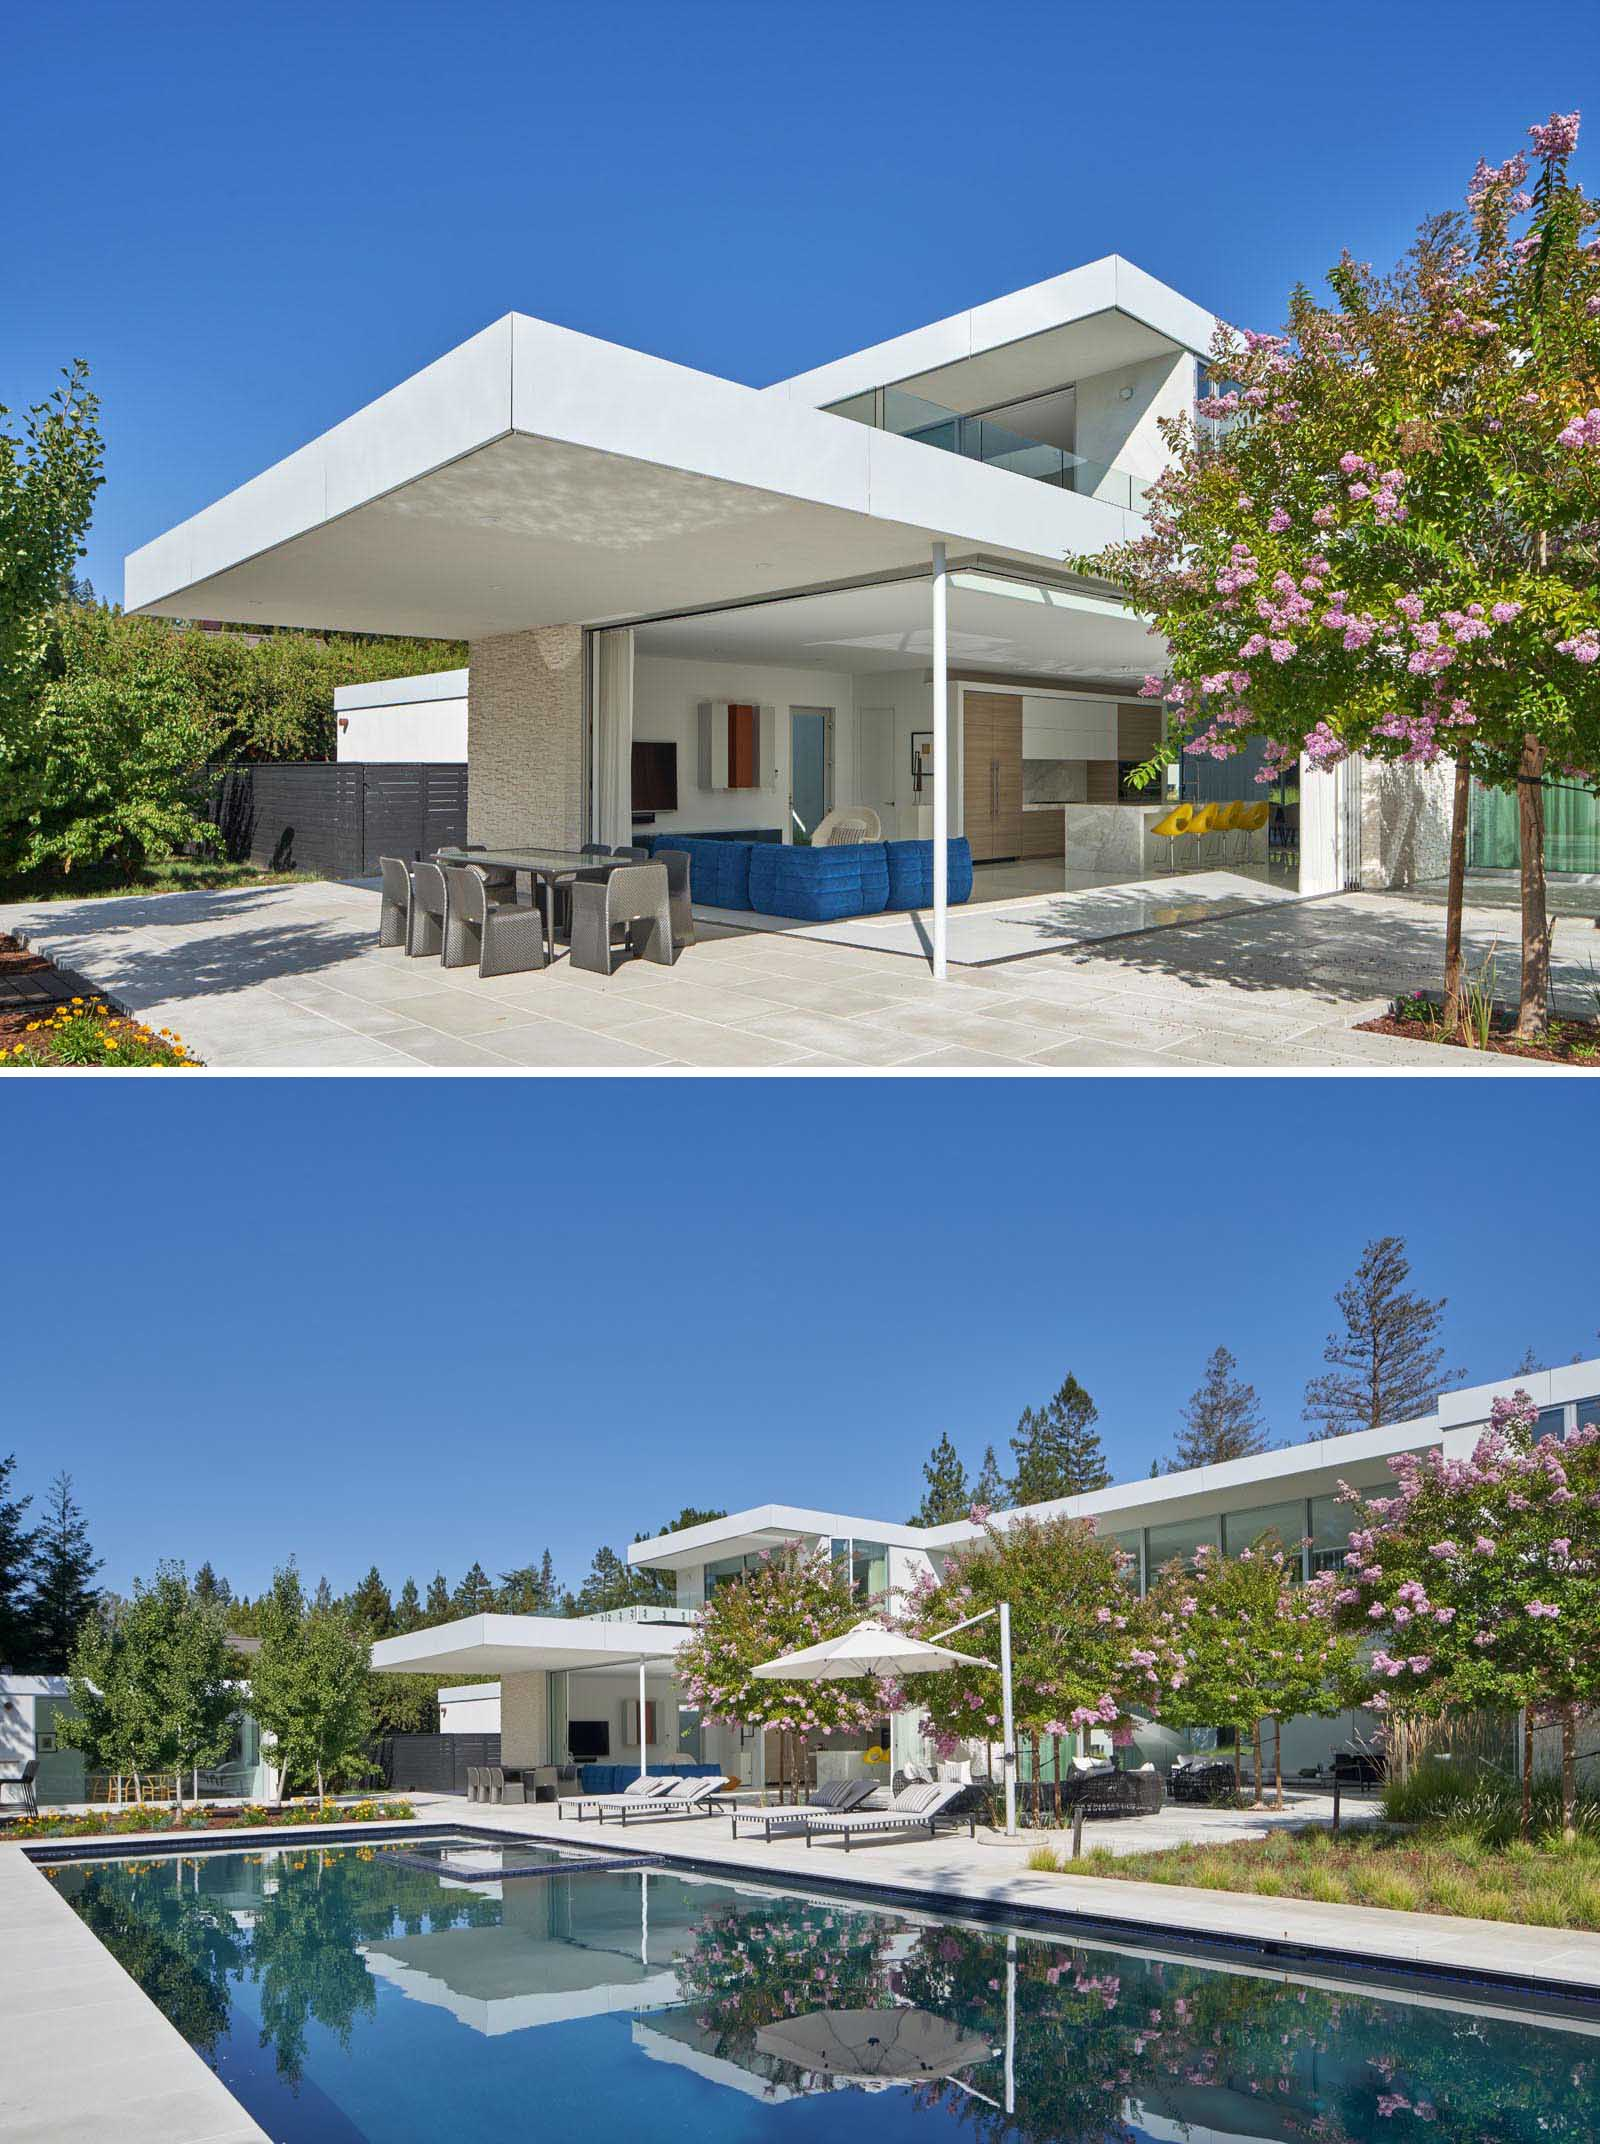 The outdoor spaces of this modern house include a covered dining patio, an lounge area, and a swimming pool.